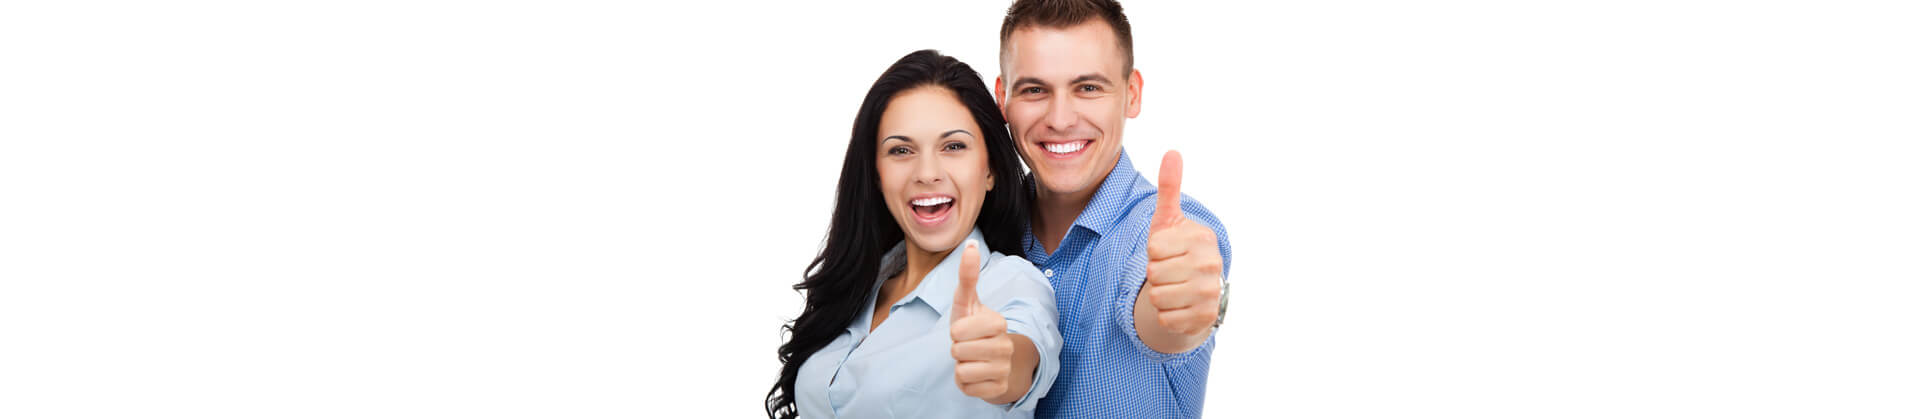 Happy couple in love excited smiling and showing thumbs up